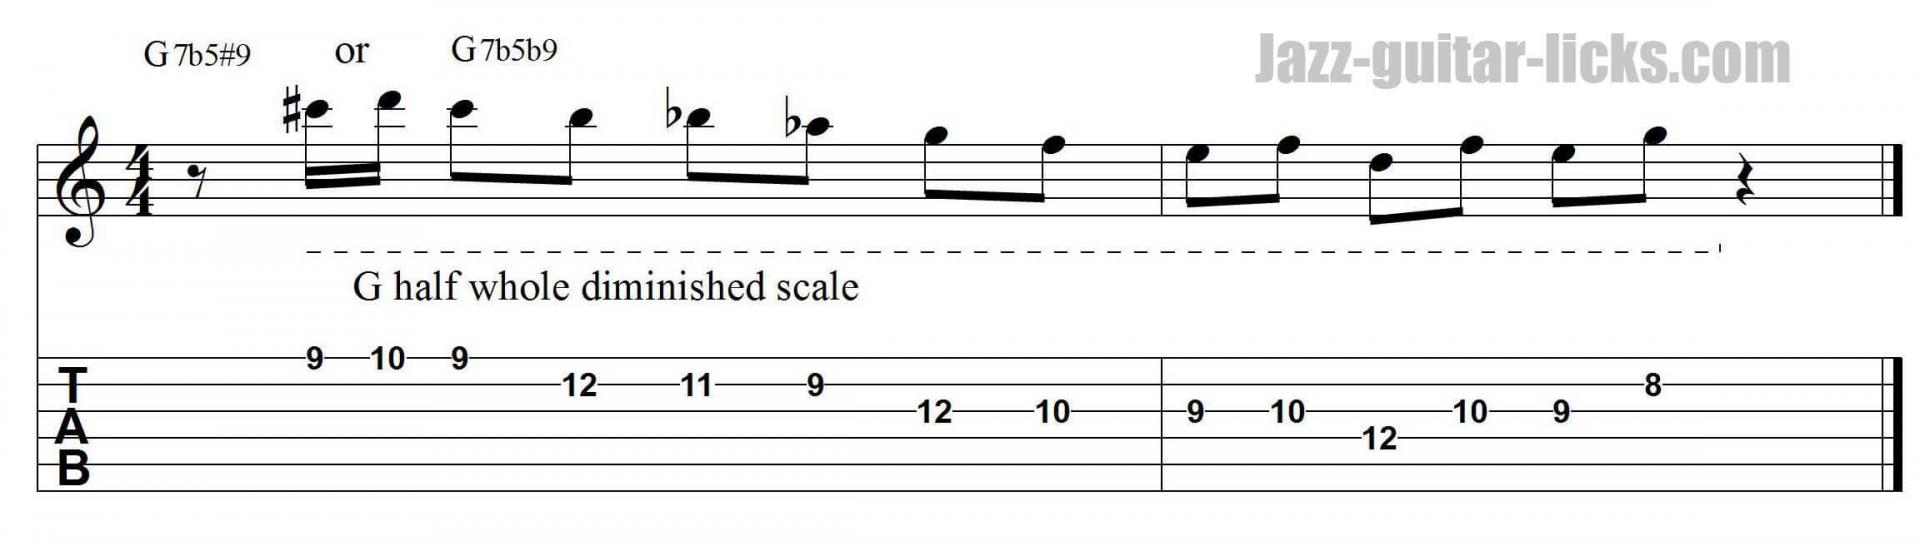 Half-whole diminished jazz guitar pattern with tab 3